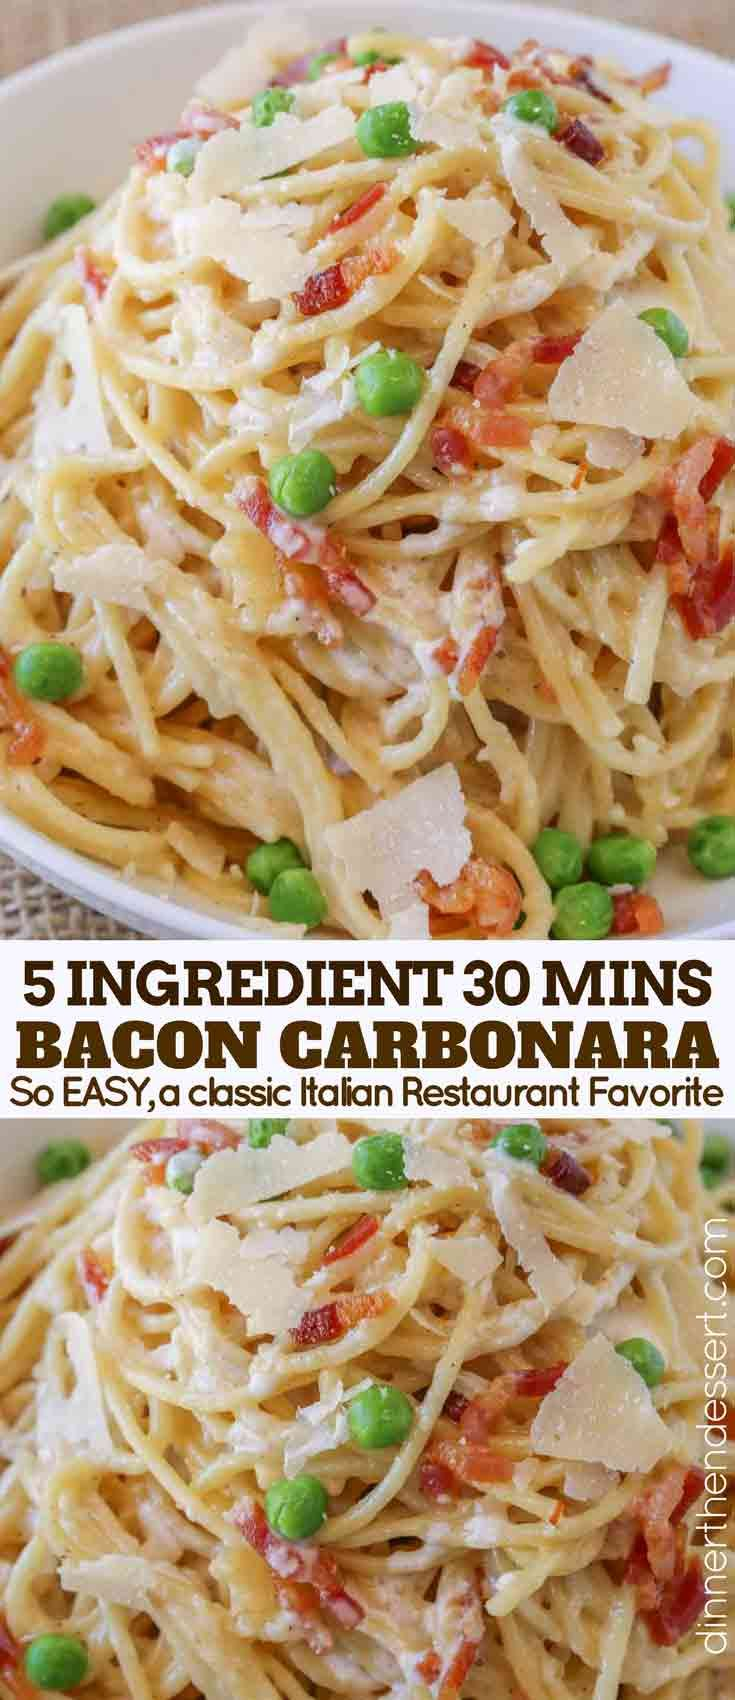 Bacon Carbonara Pasta is an Italian classic pasta dish with creamy egg sauce wit…